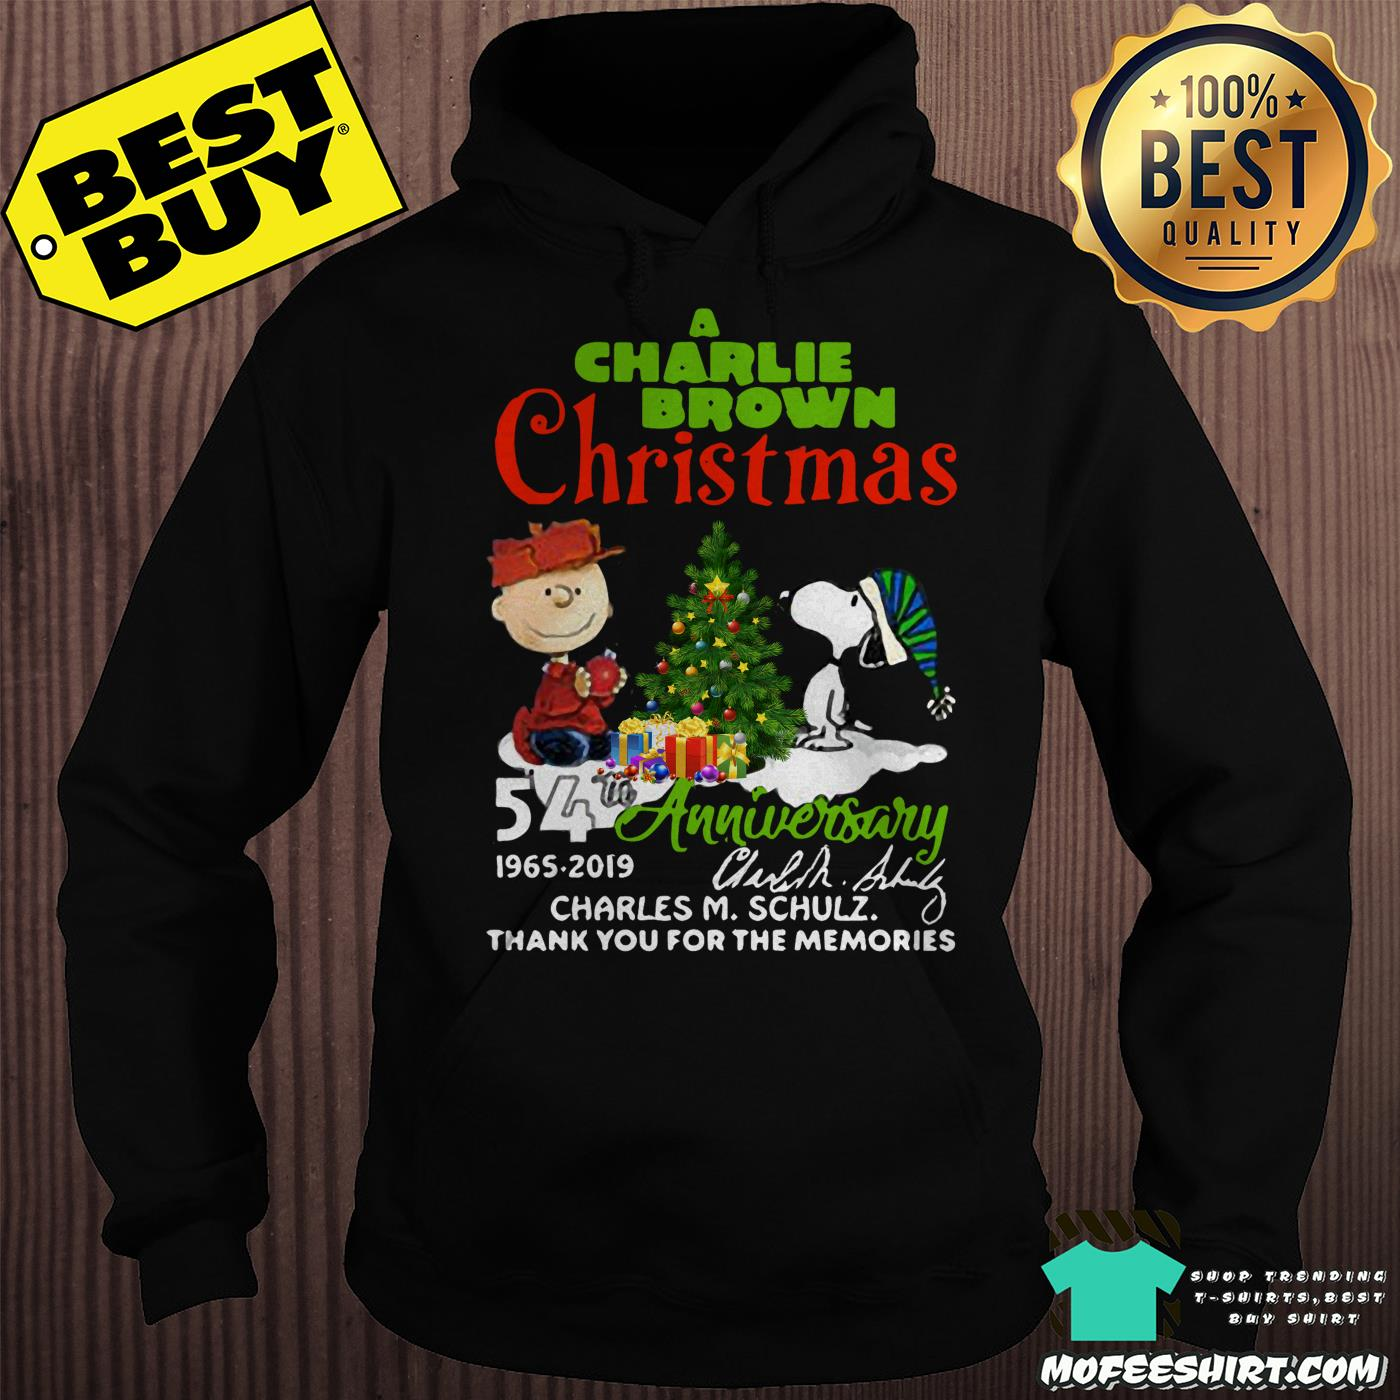 a charlie brown christmas 54th anniversary 1965 2019 signature hoodie - A Charlie Brown Christmas 54th Anniversary 1965-2019 Signature Shirt